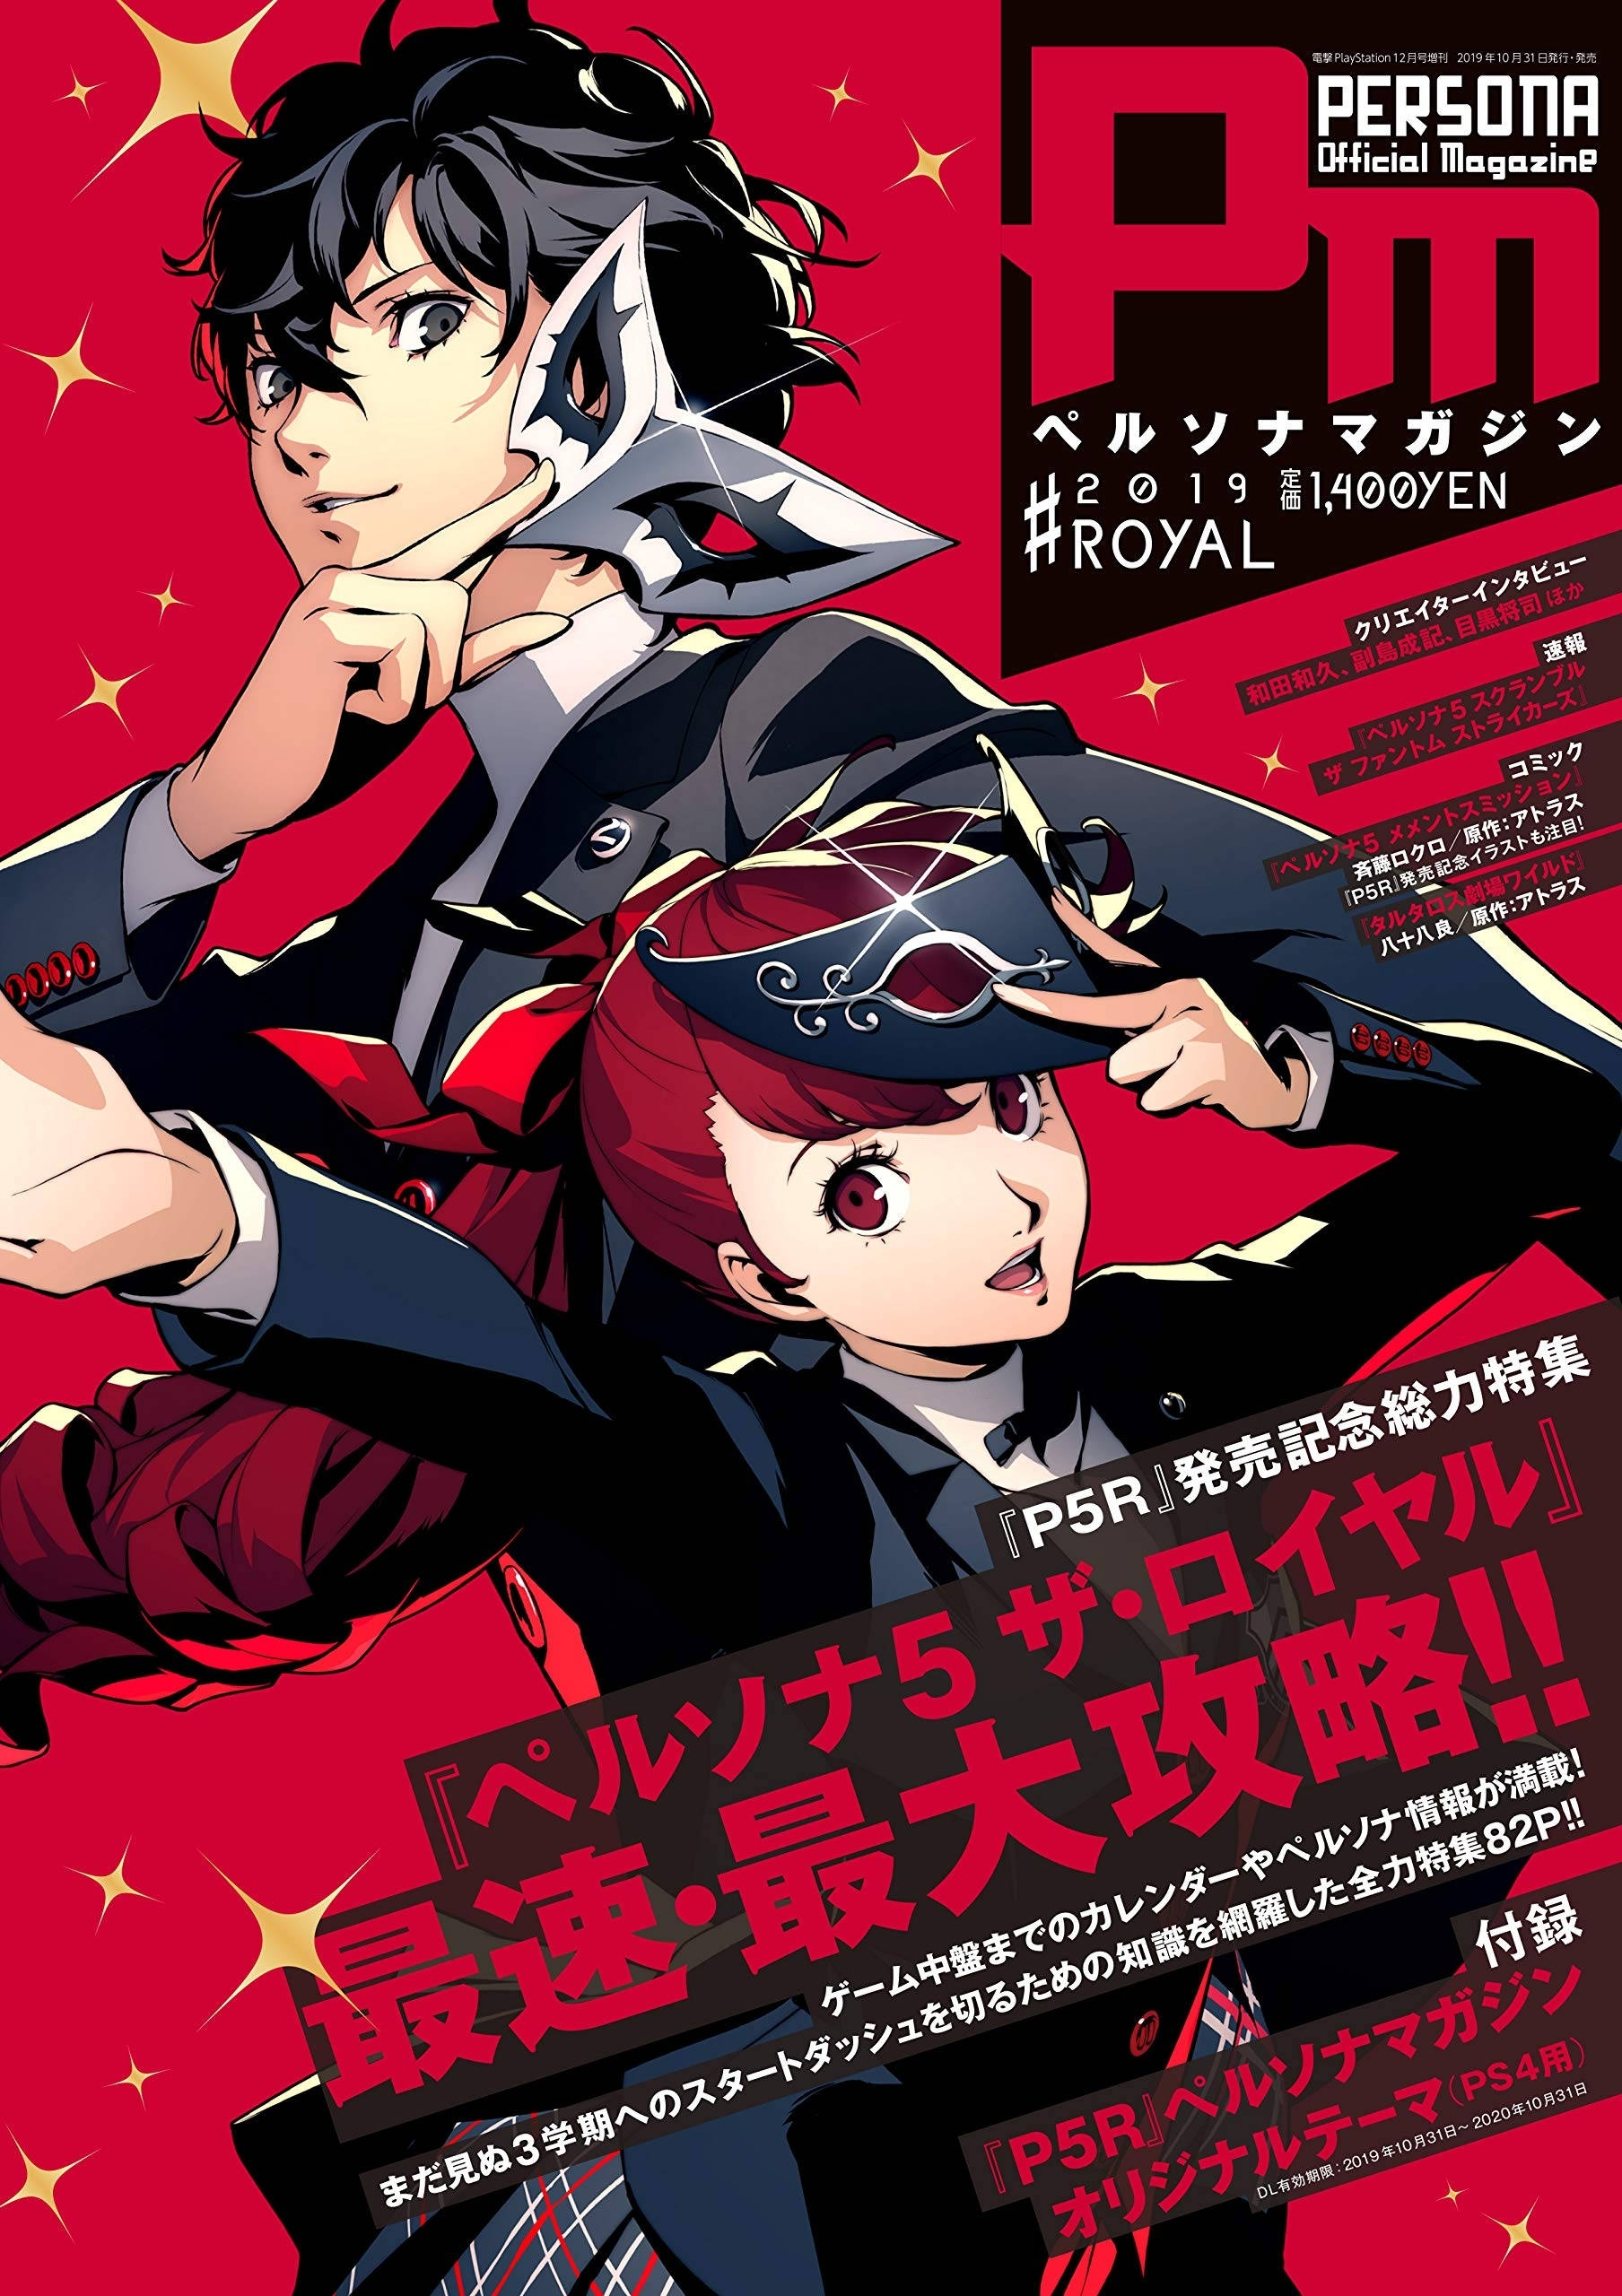 Persona Magazine #2019 Royal Issue Content Overview